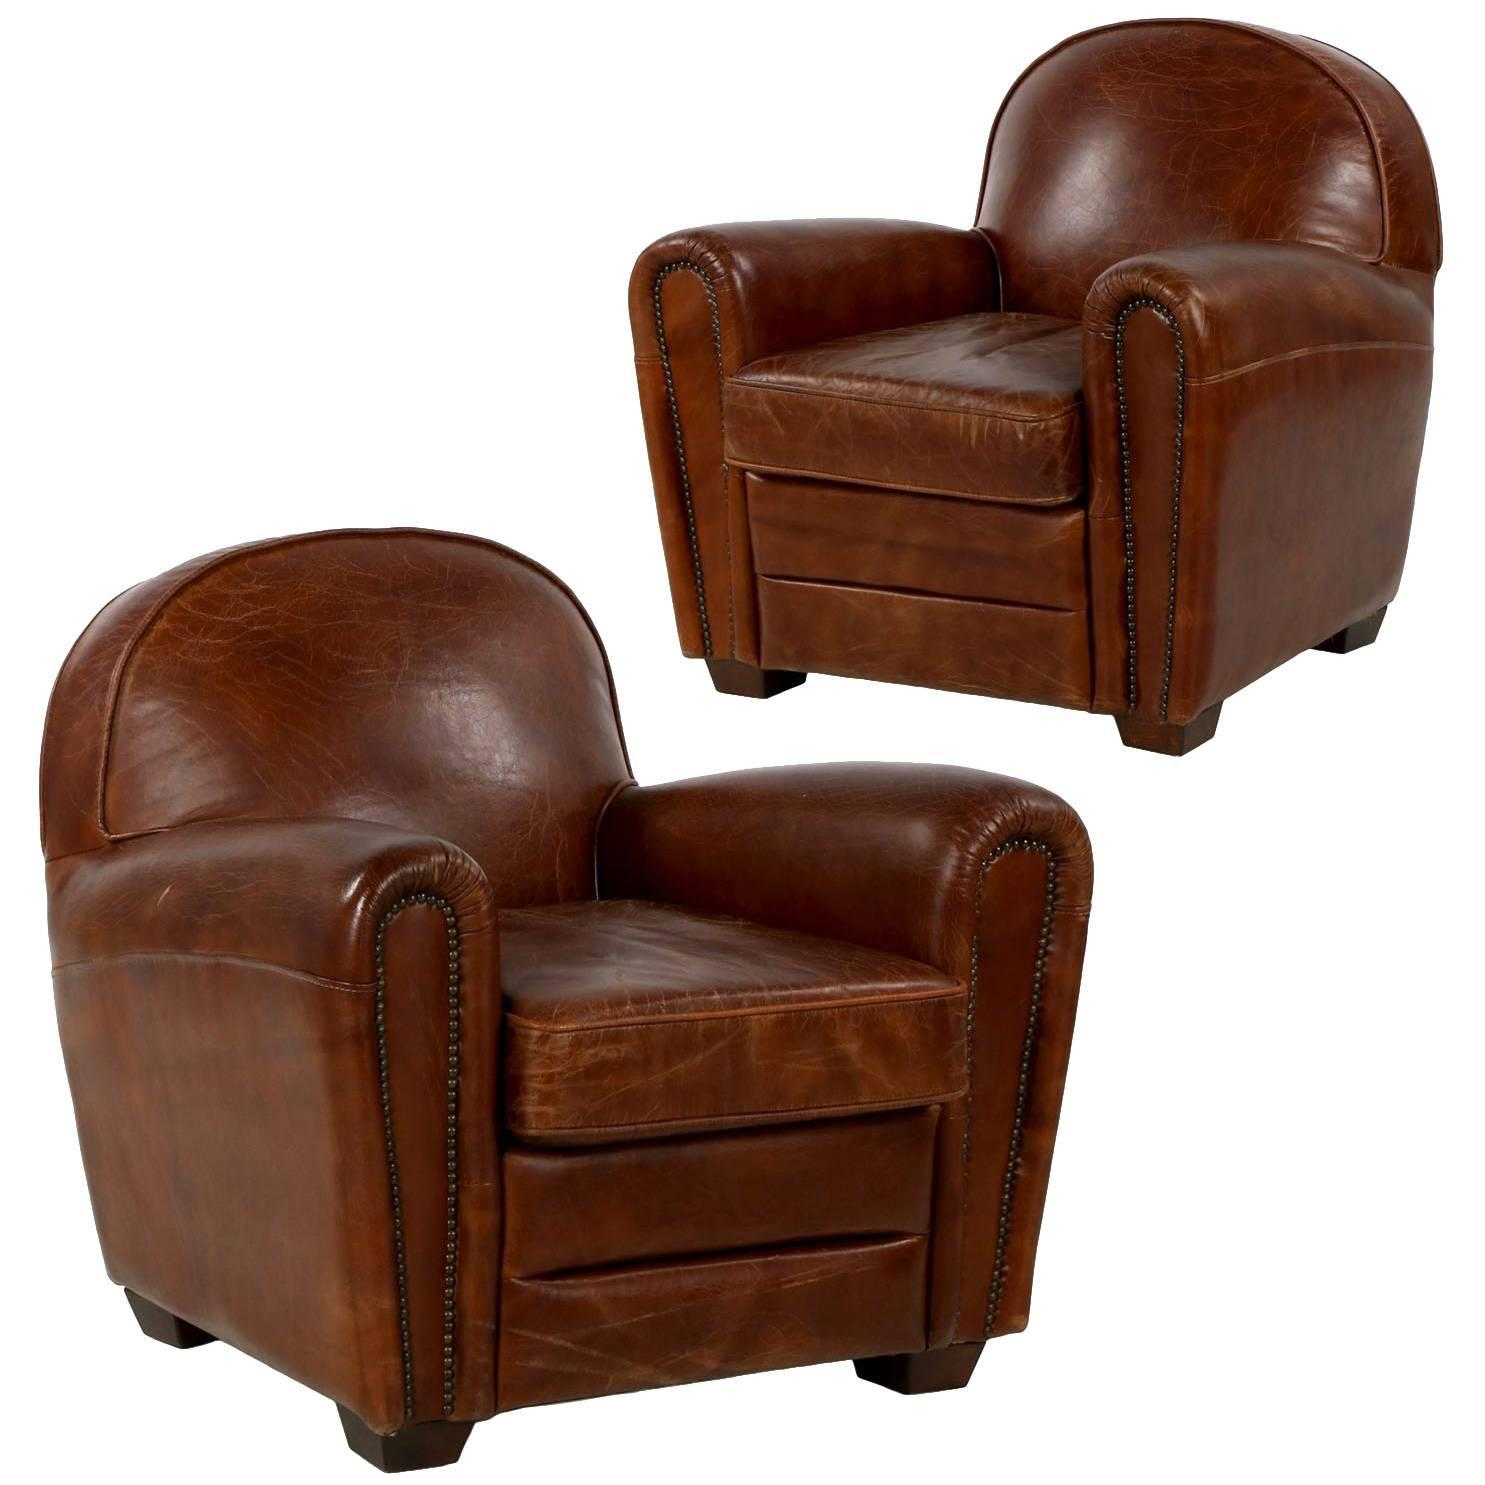 Pair Of Art Deco Style Distressed Leather Club Armchairs Late 20th Century At 1stdibs